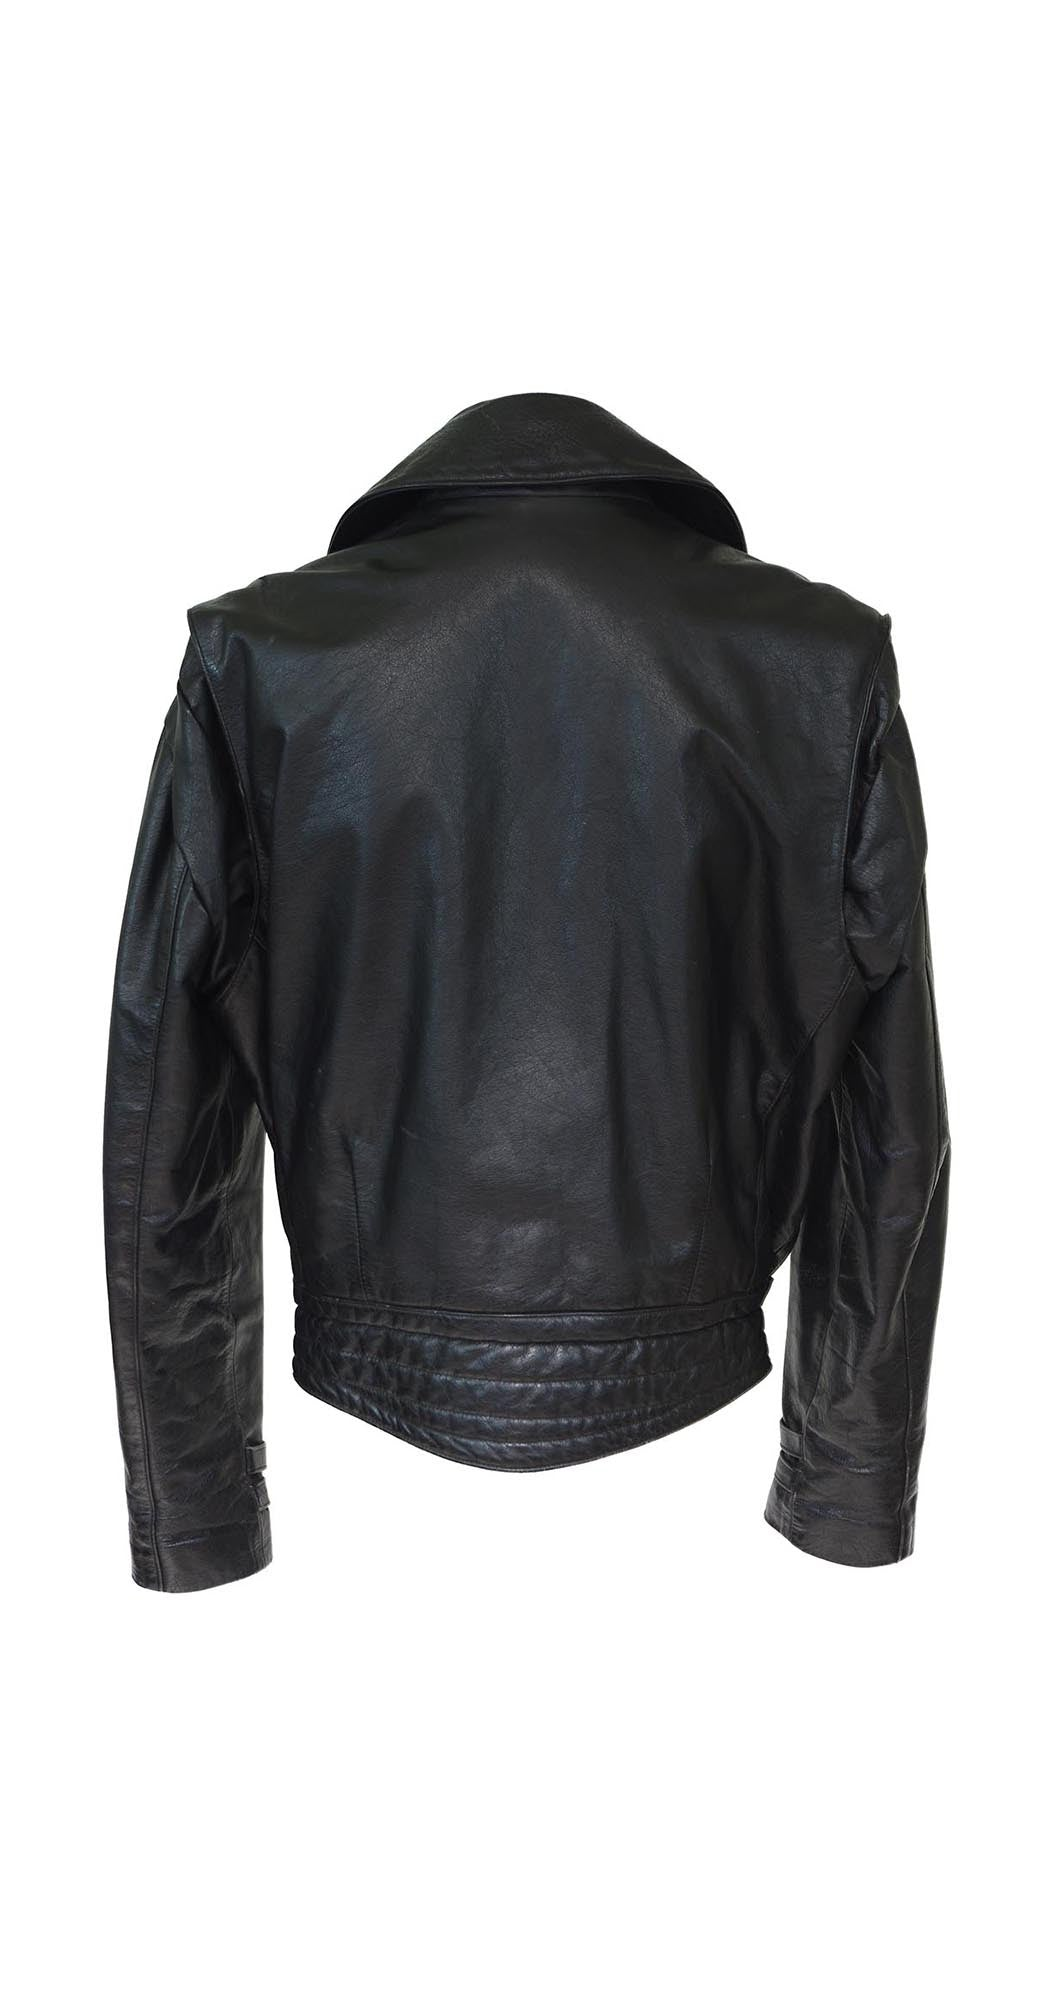 1980's Johnsons Black Leather Motorcycle Jacket